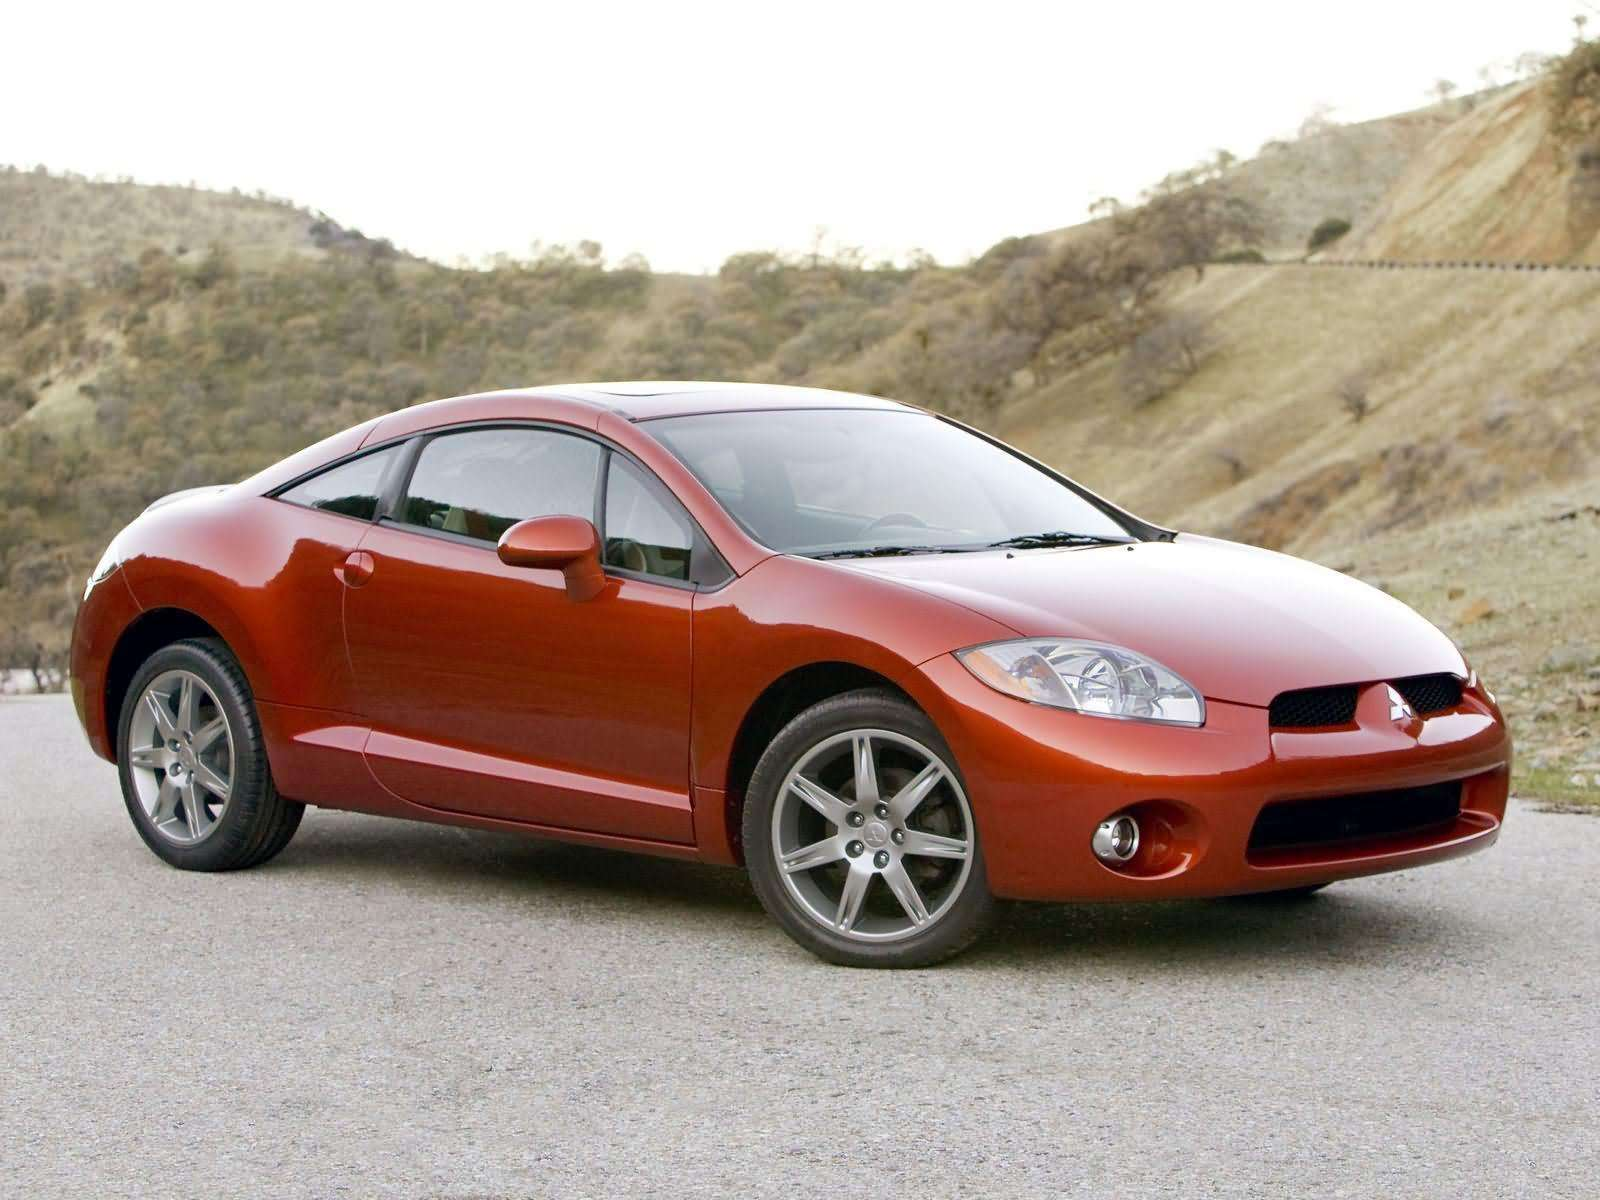 3DTuning of Mitsubishi Eclipse Coupe 2006 3DTuning.com - unique on-line car configurator for ...